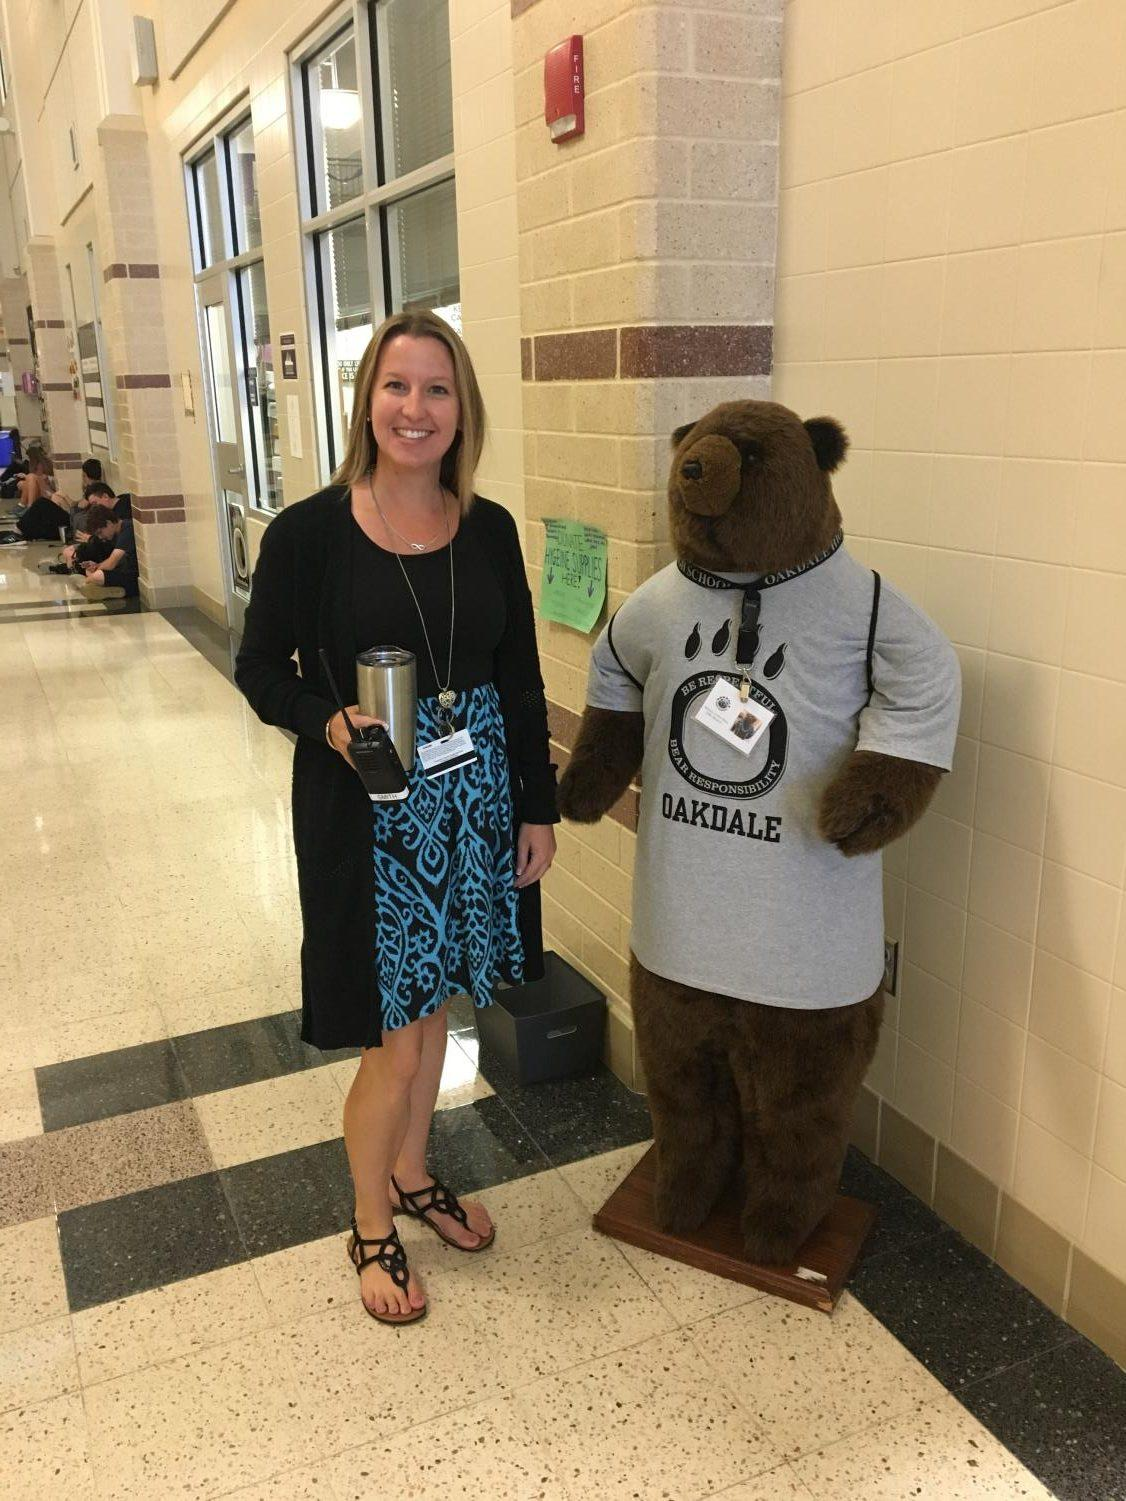 Excited to be a bear, Ms. Smith poses with her new friend Harvey.